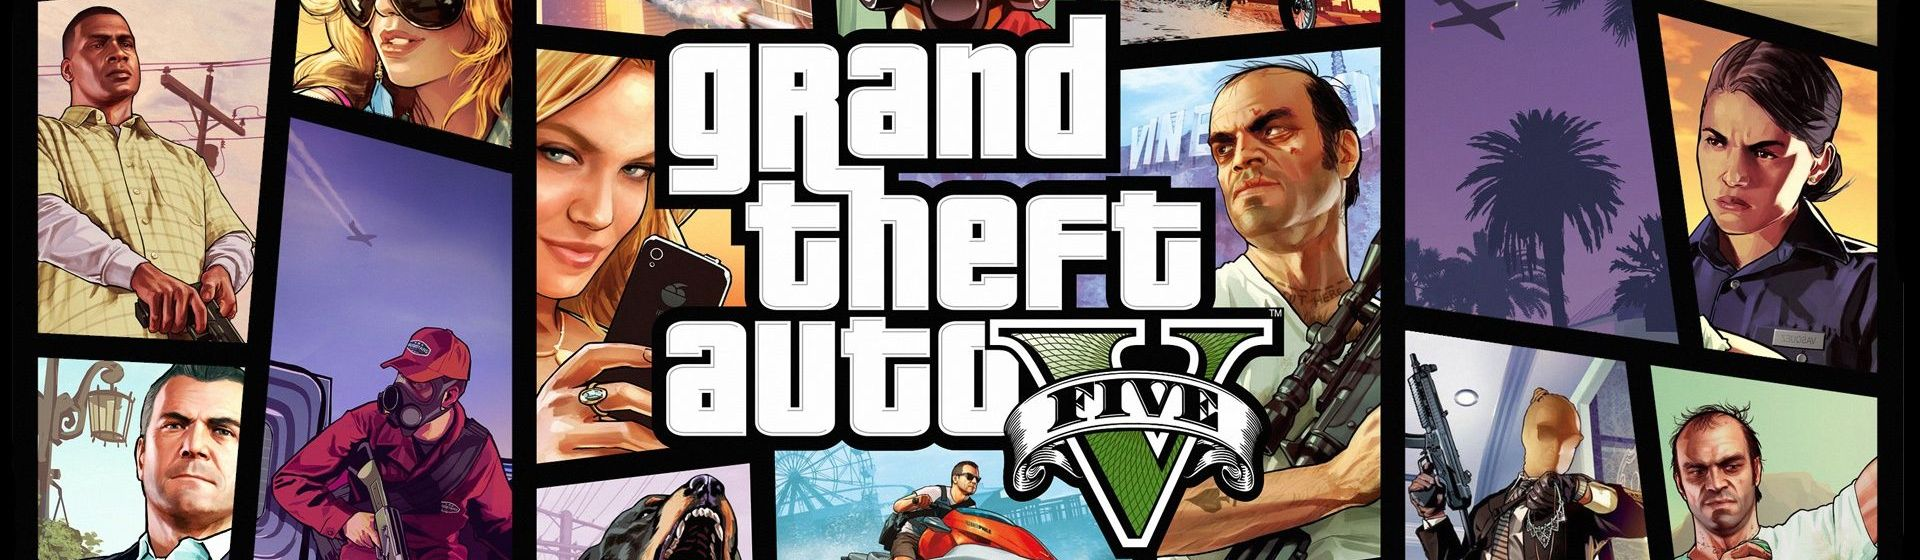 Códigos GTA 5: cheats e macetes do PS4, PS3, Xbox One, Xbox 360 e PC